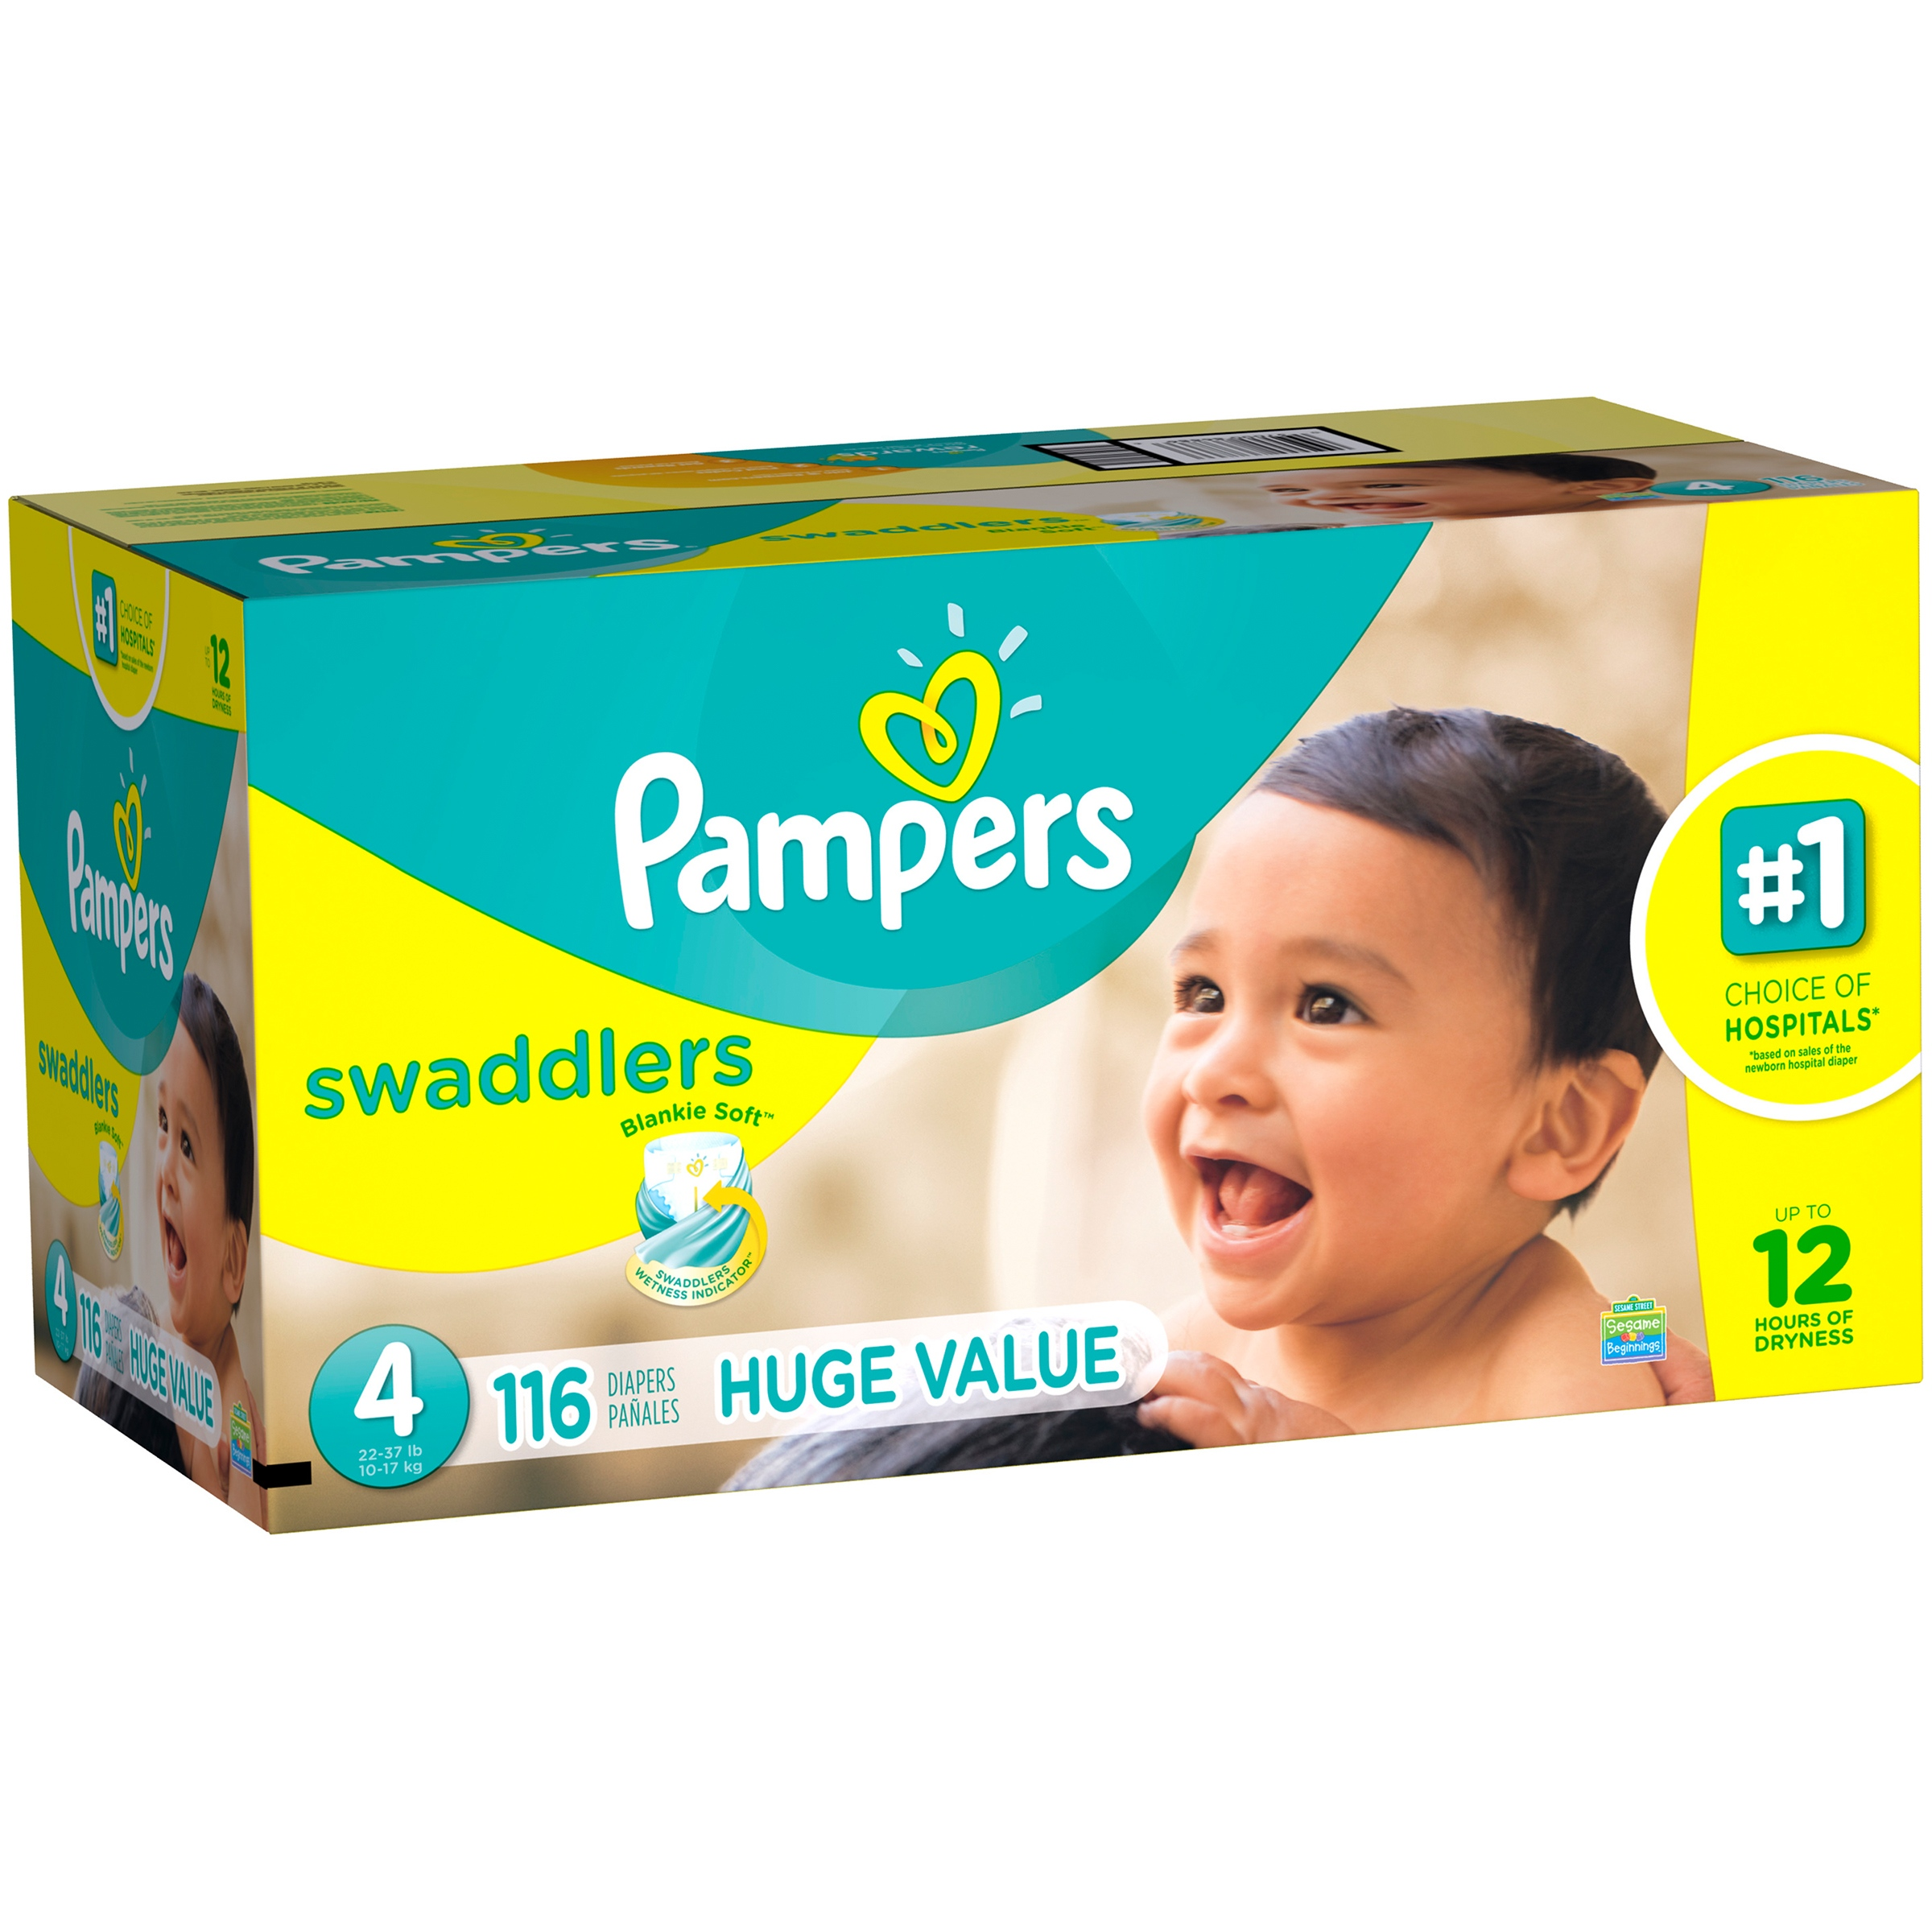 Shop from items for Baby Diapers available at adalatblog.ml - an online baby and kids store. Explore a wide range of Baby Diapers from our collection which includes products from popular brands like Pampers,Mamy Poko,Huggies,Libero,Bella and more.